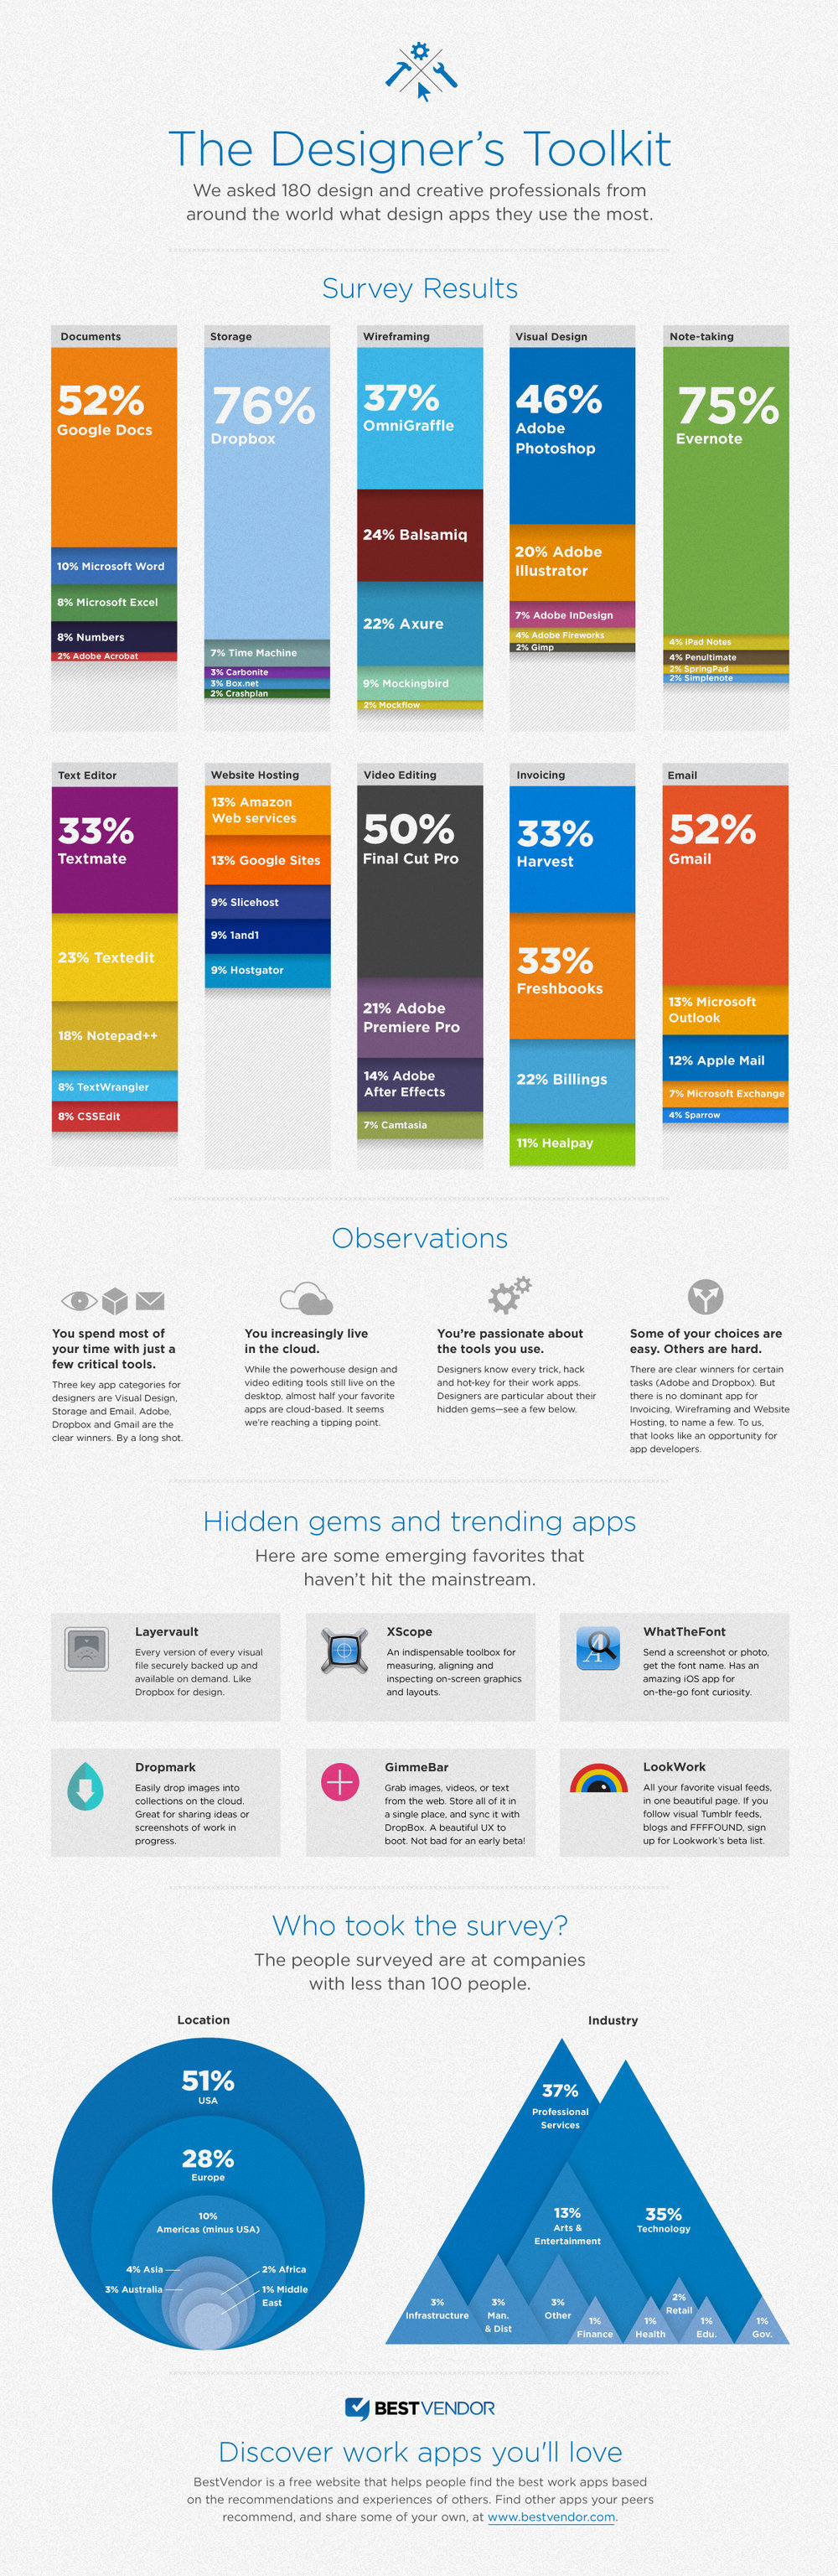 The Designer's Toolkit: The Most Popular Design Tools infographic